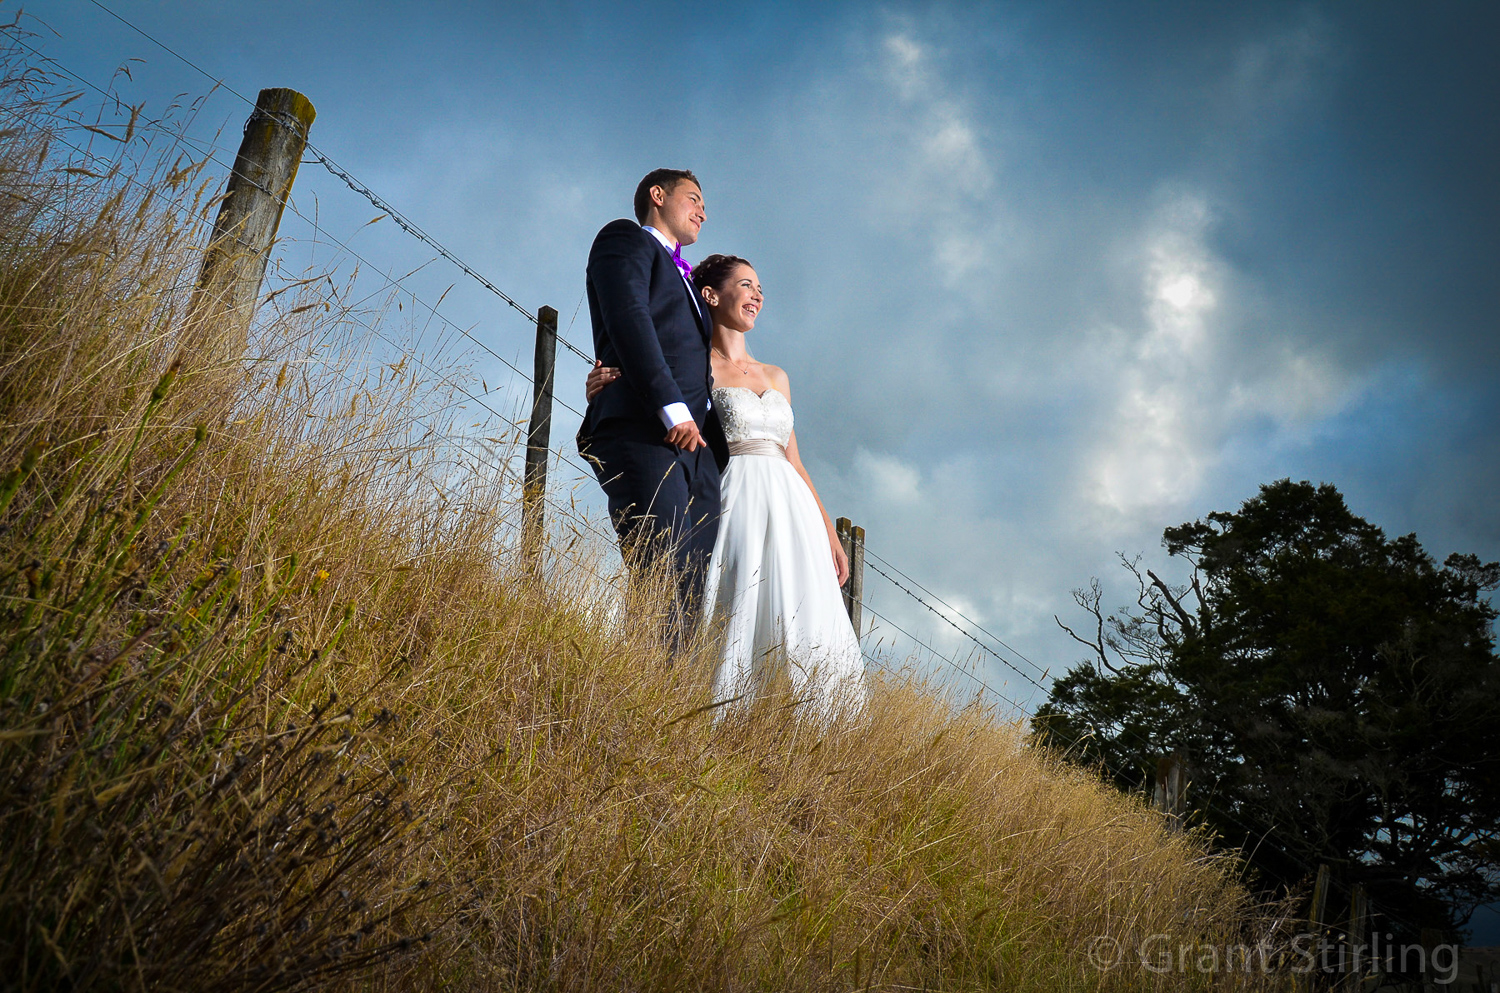 Neudorf wedding couple-5342-2.jpg